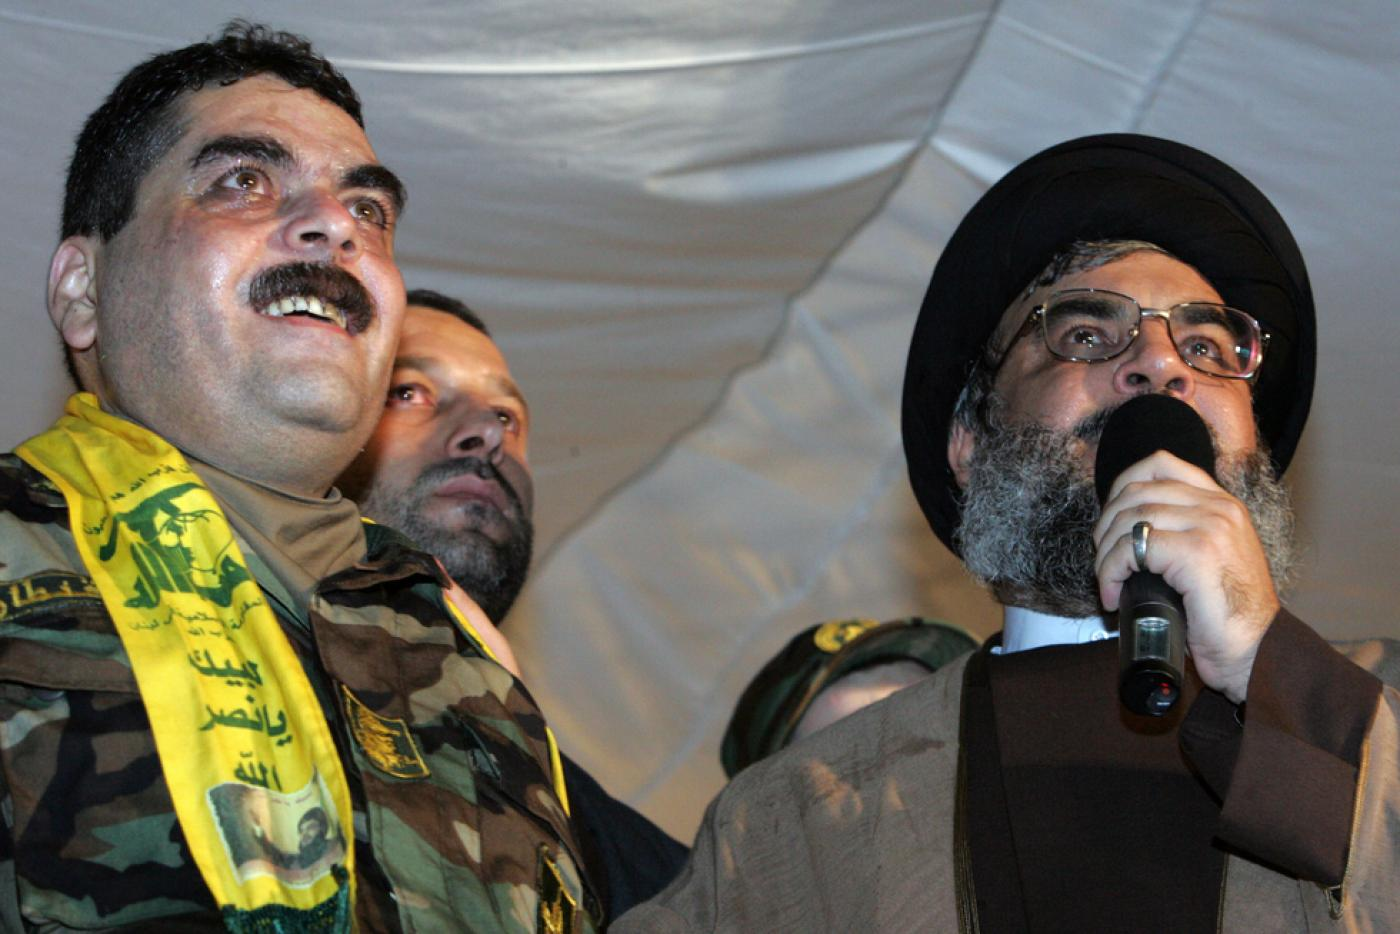 Hezbollah confirms the death of one of its members in the Monday bombing near Damascus